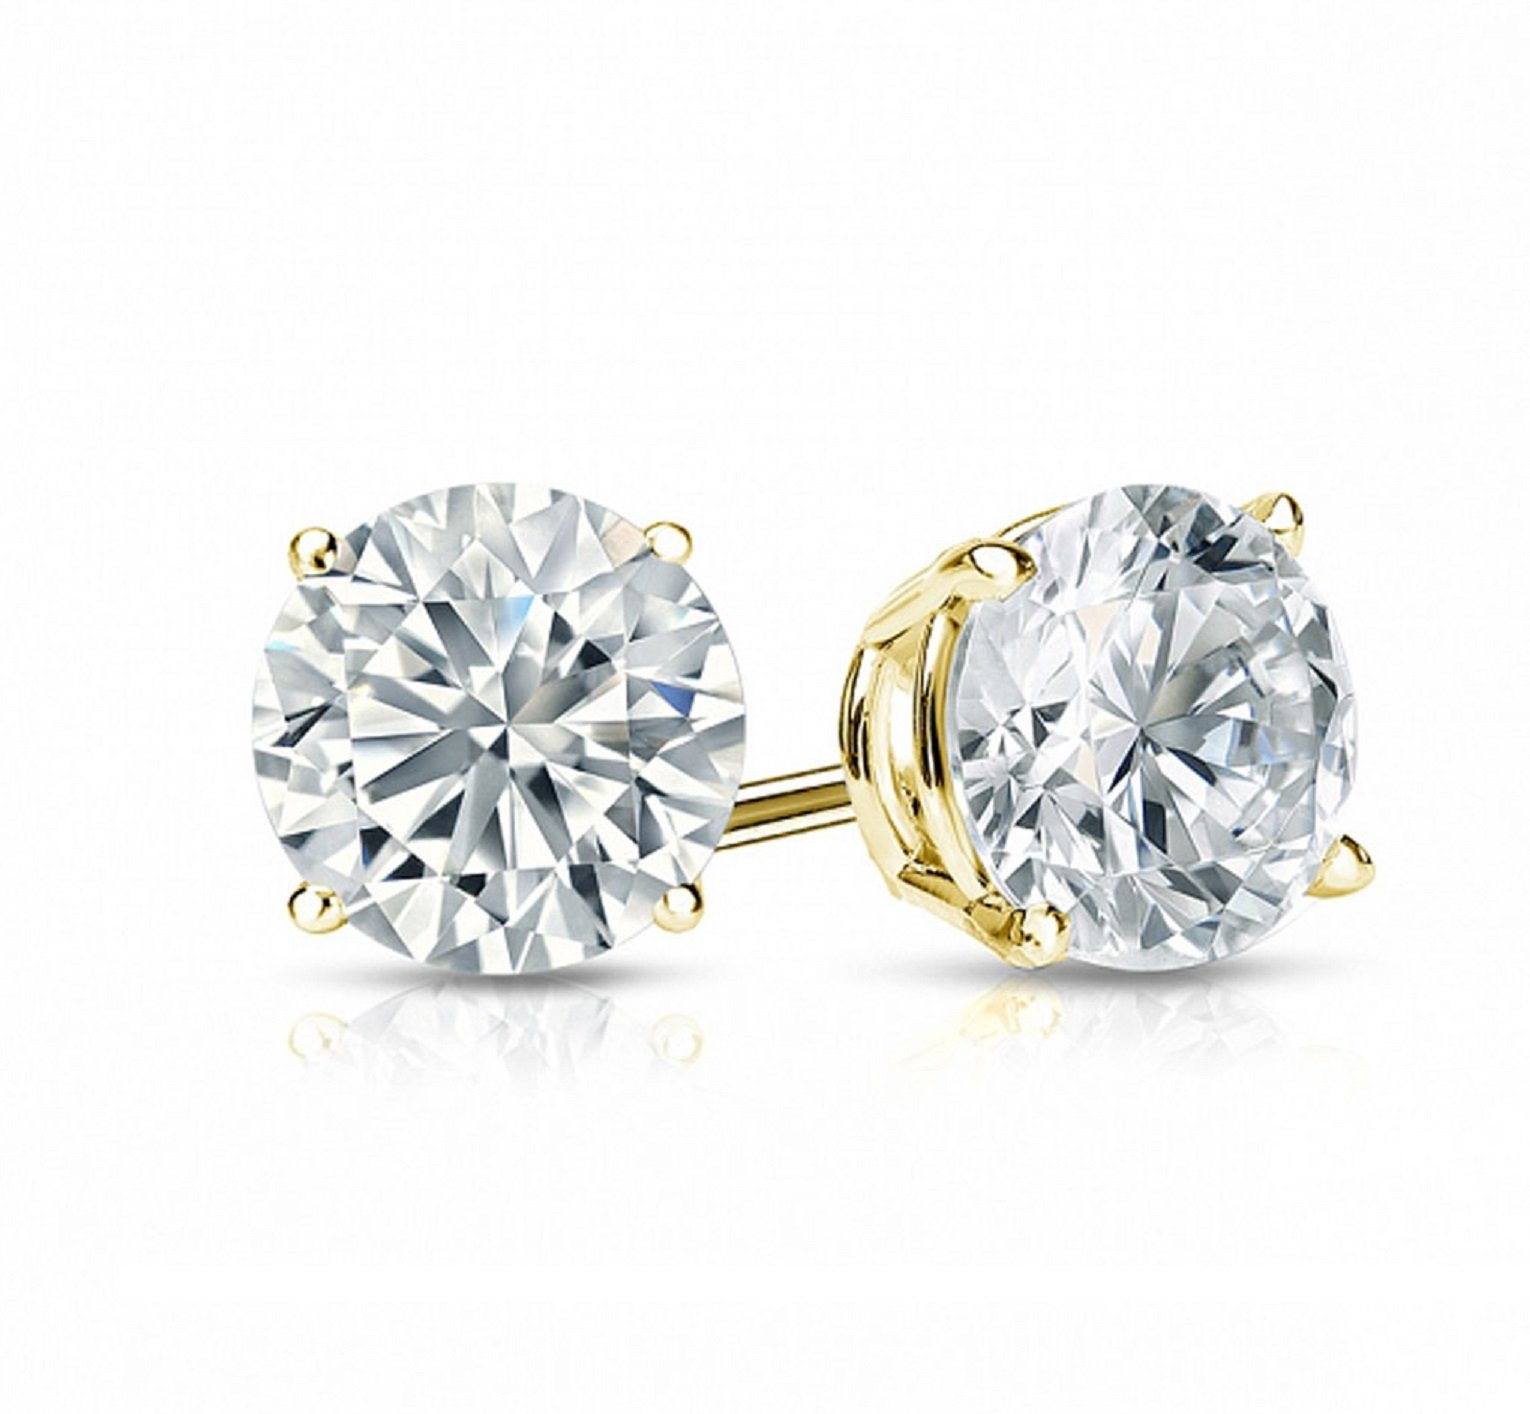 2.0 ct Round Brilliant Cut Simulated Diamond CZ Solitaire Stud Earrings in 14k Yellow Gold Push Back by Clara Pucci (Image #2)